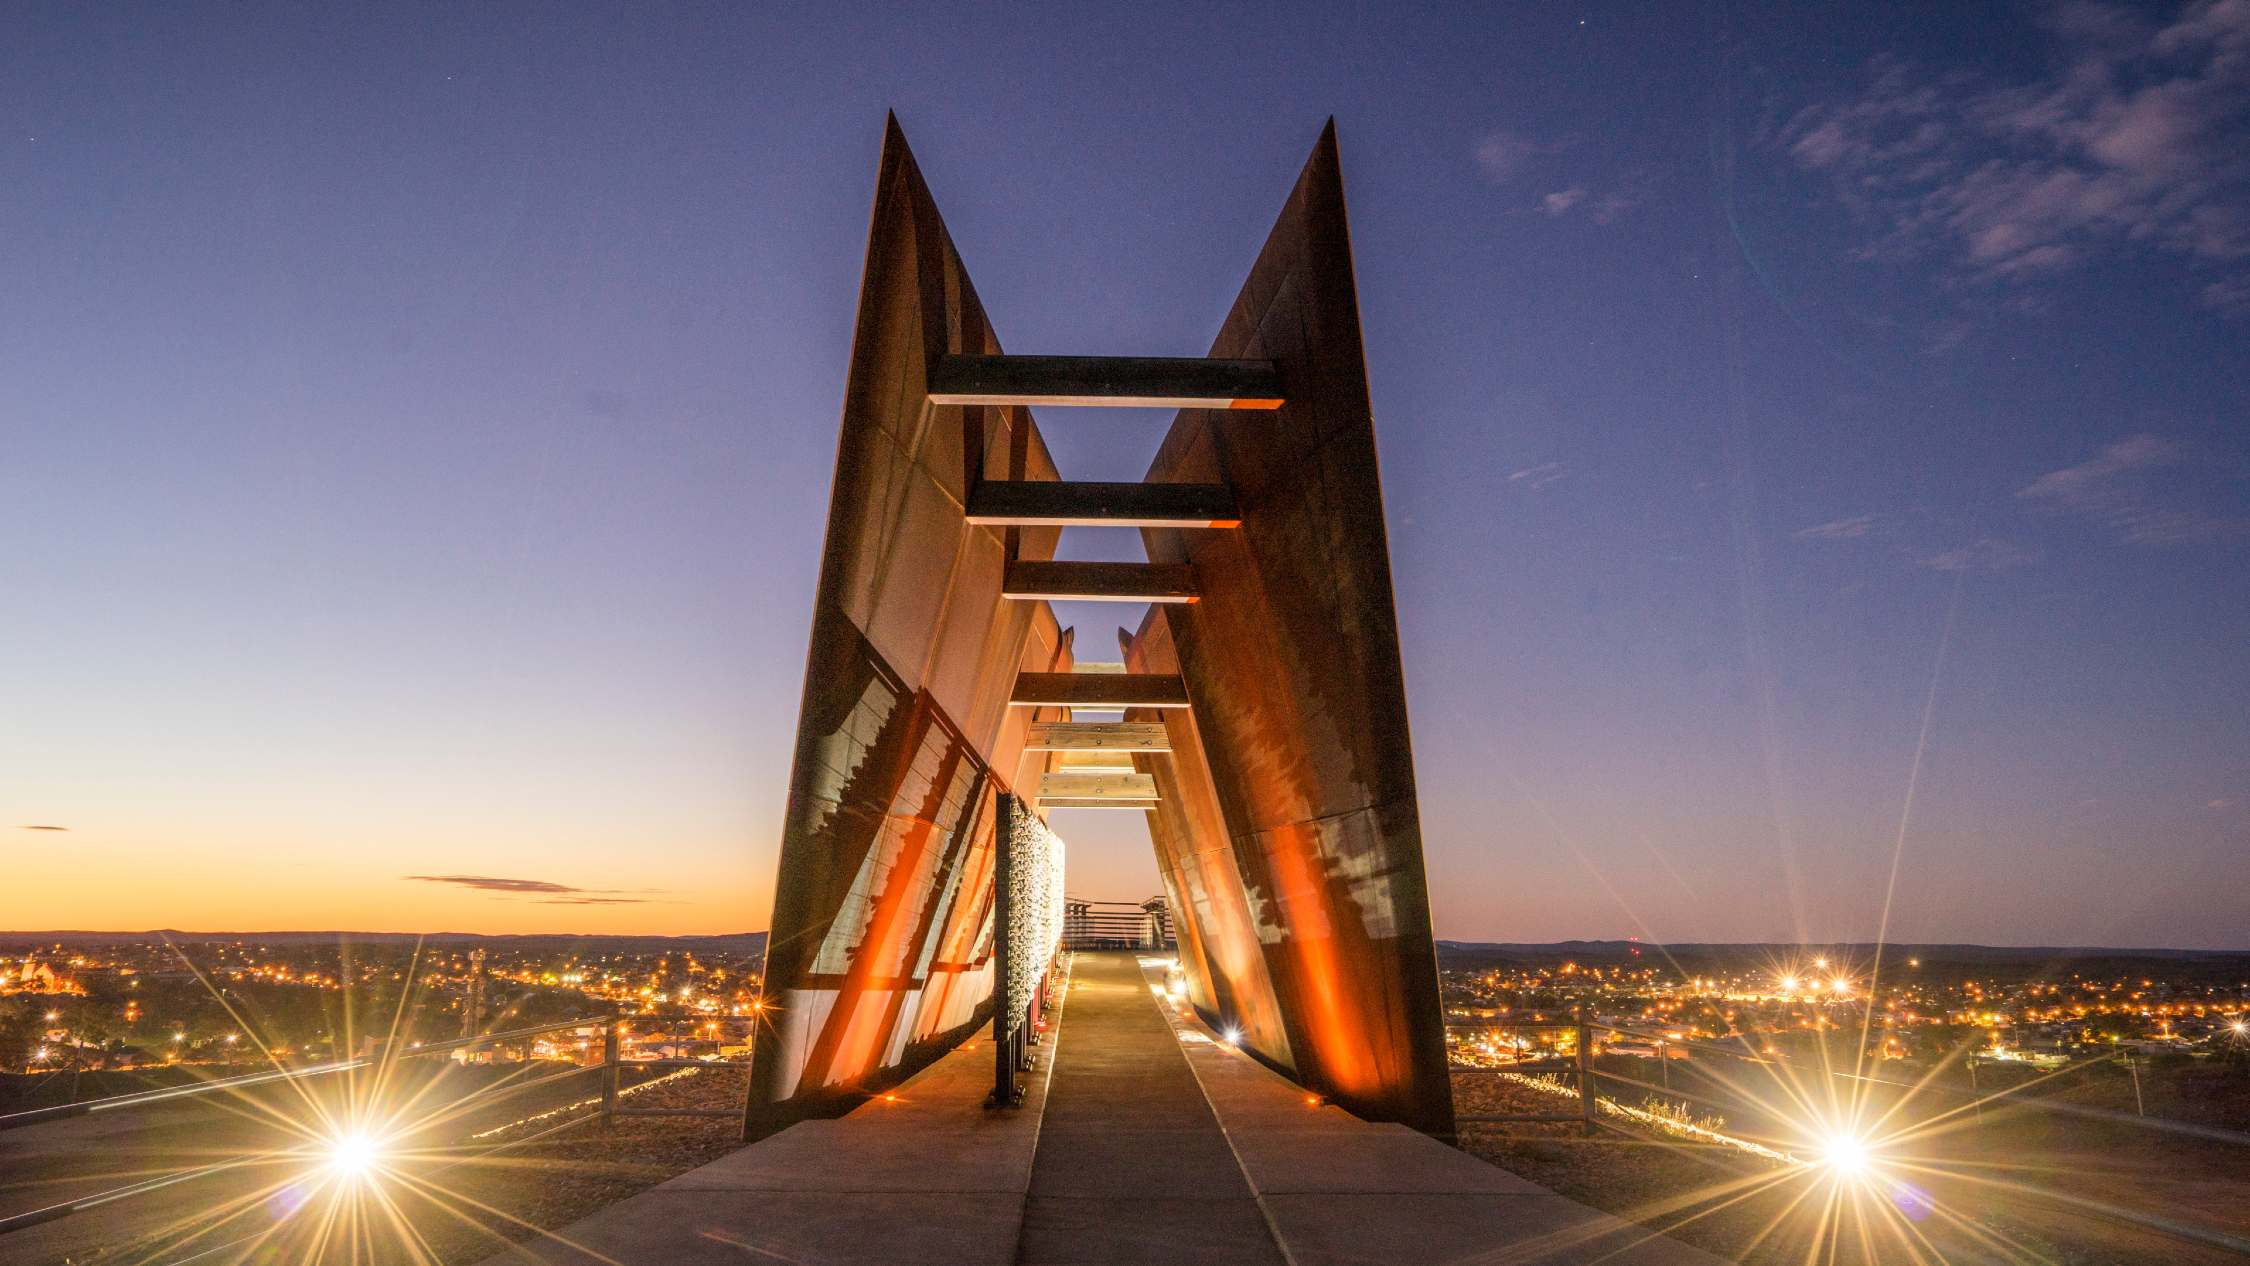 The Miners Memorial at Broken Hill